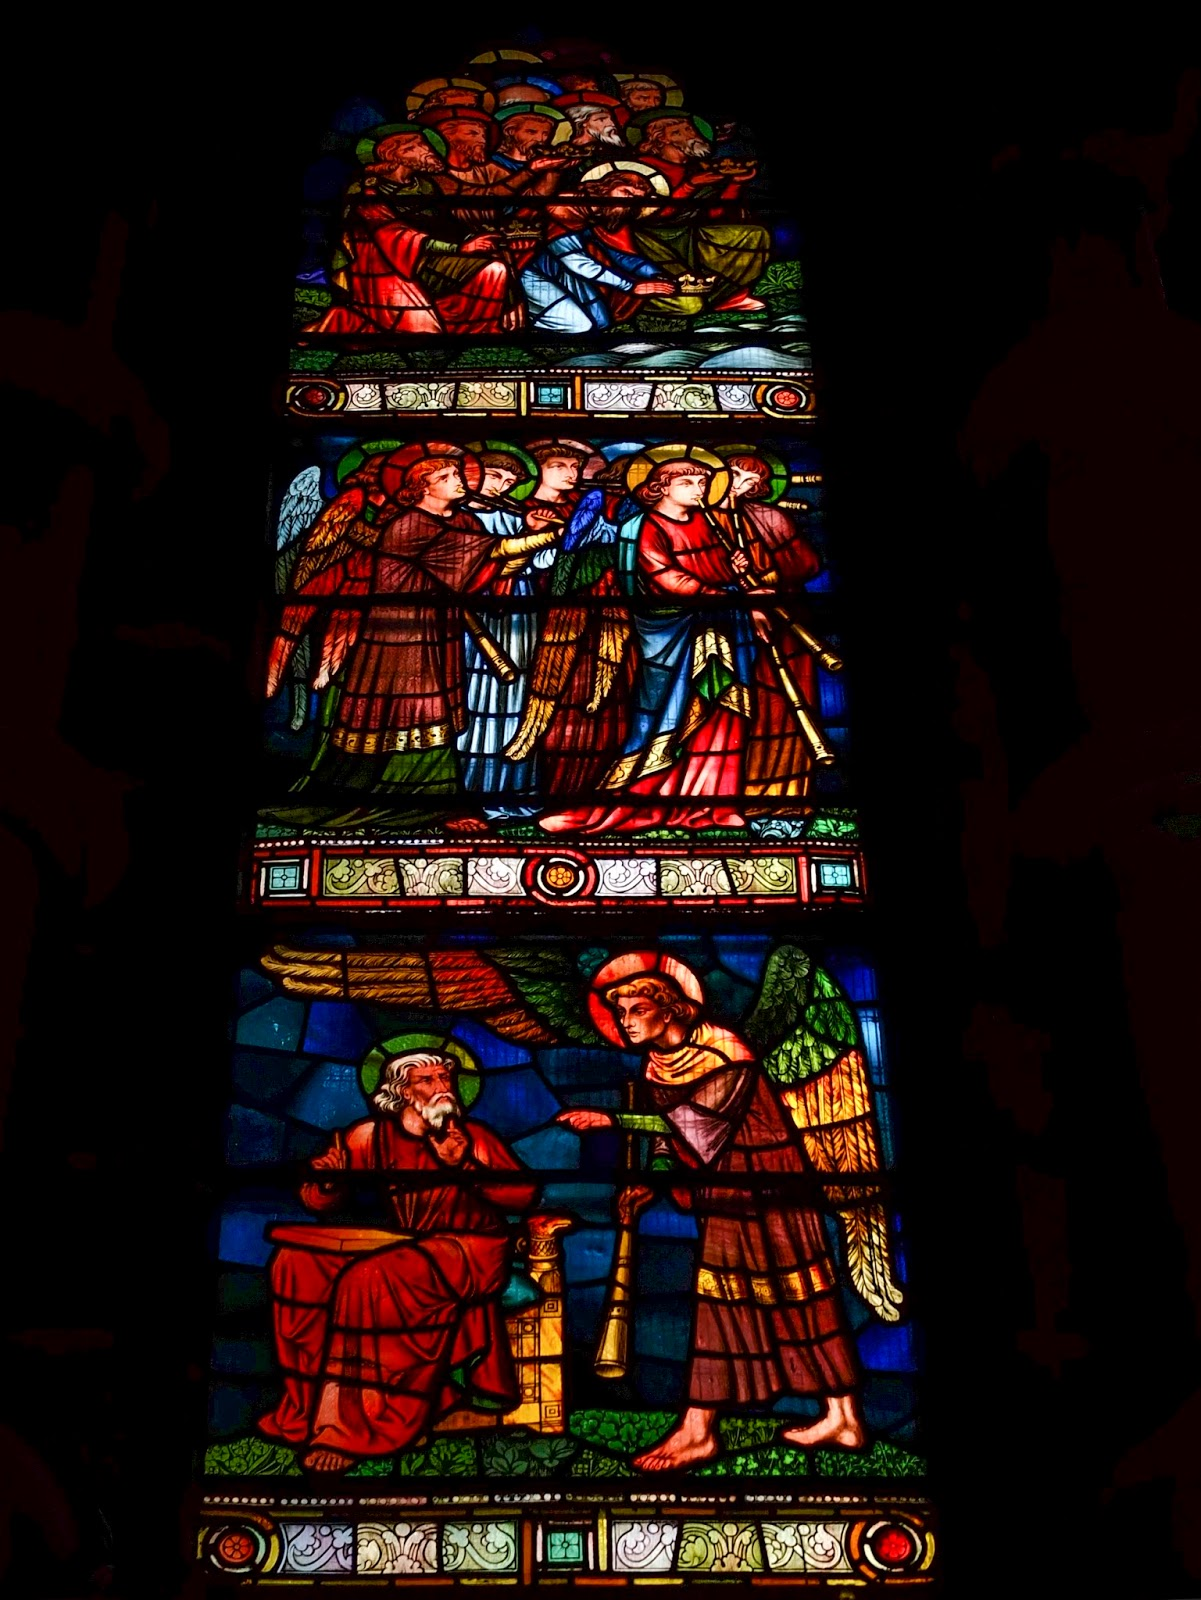 A large stained glass window in St Fin Barre's Cathedral, Cork City.